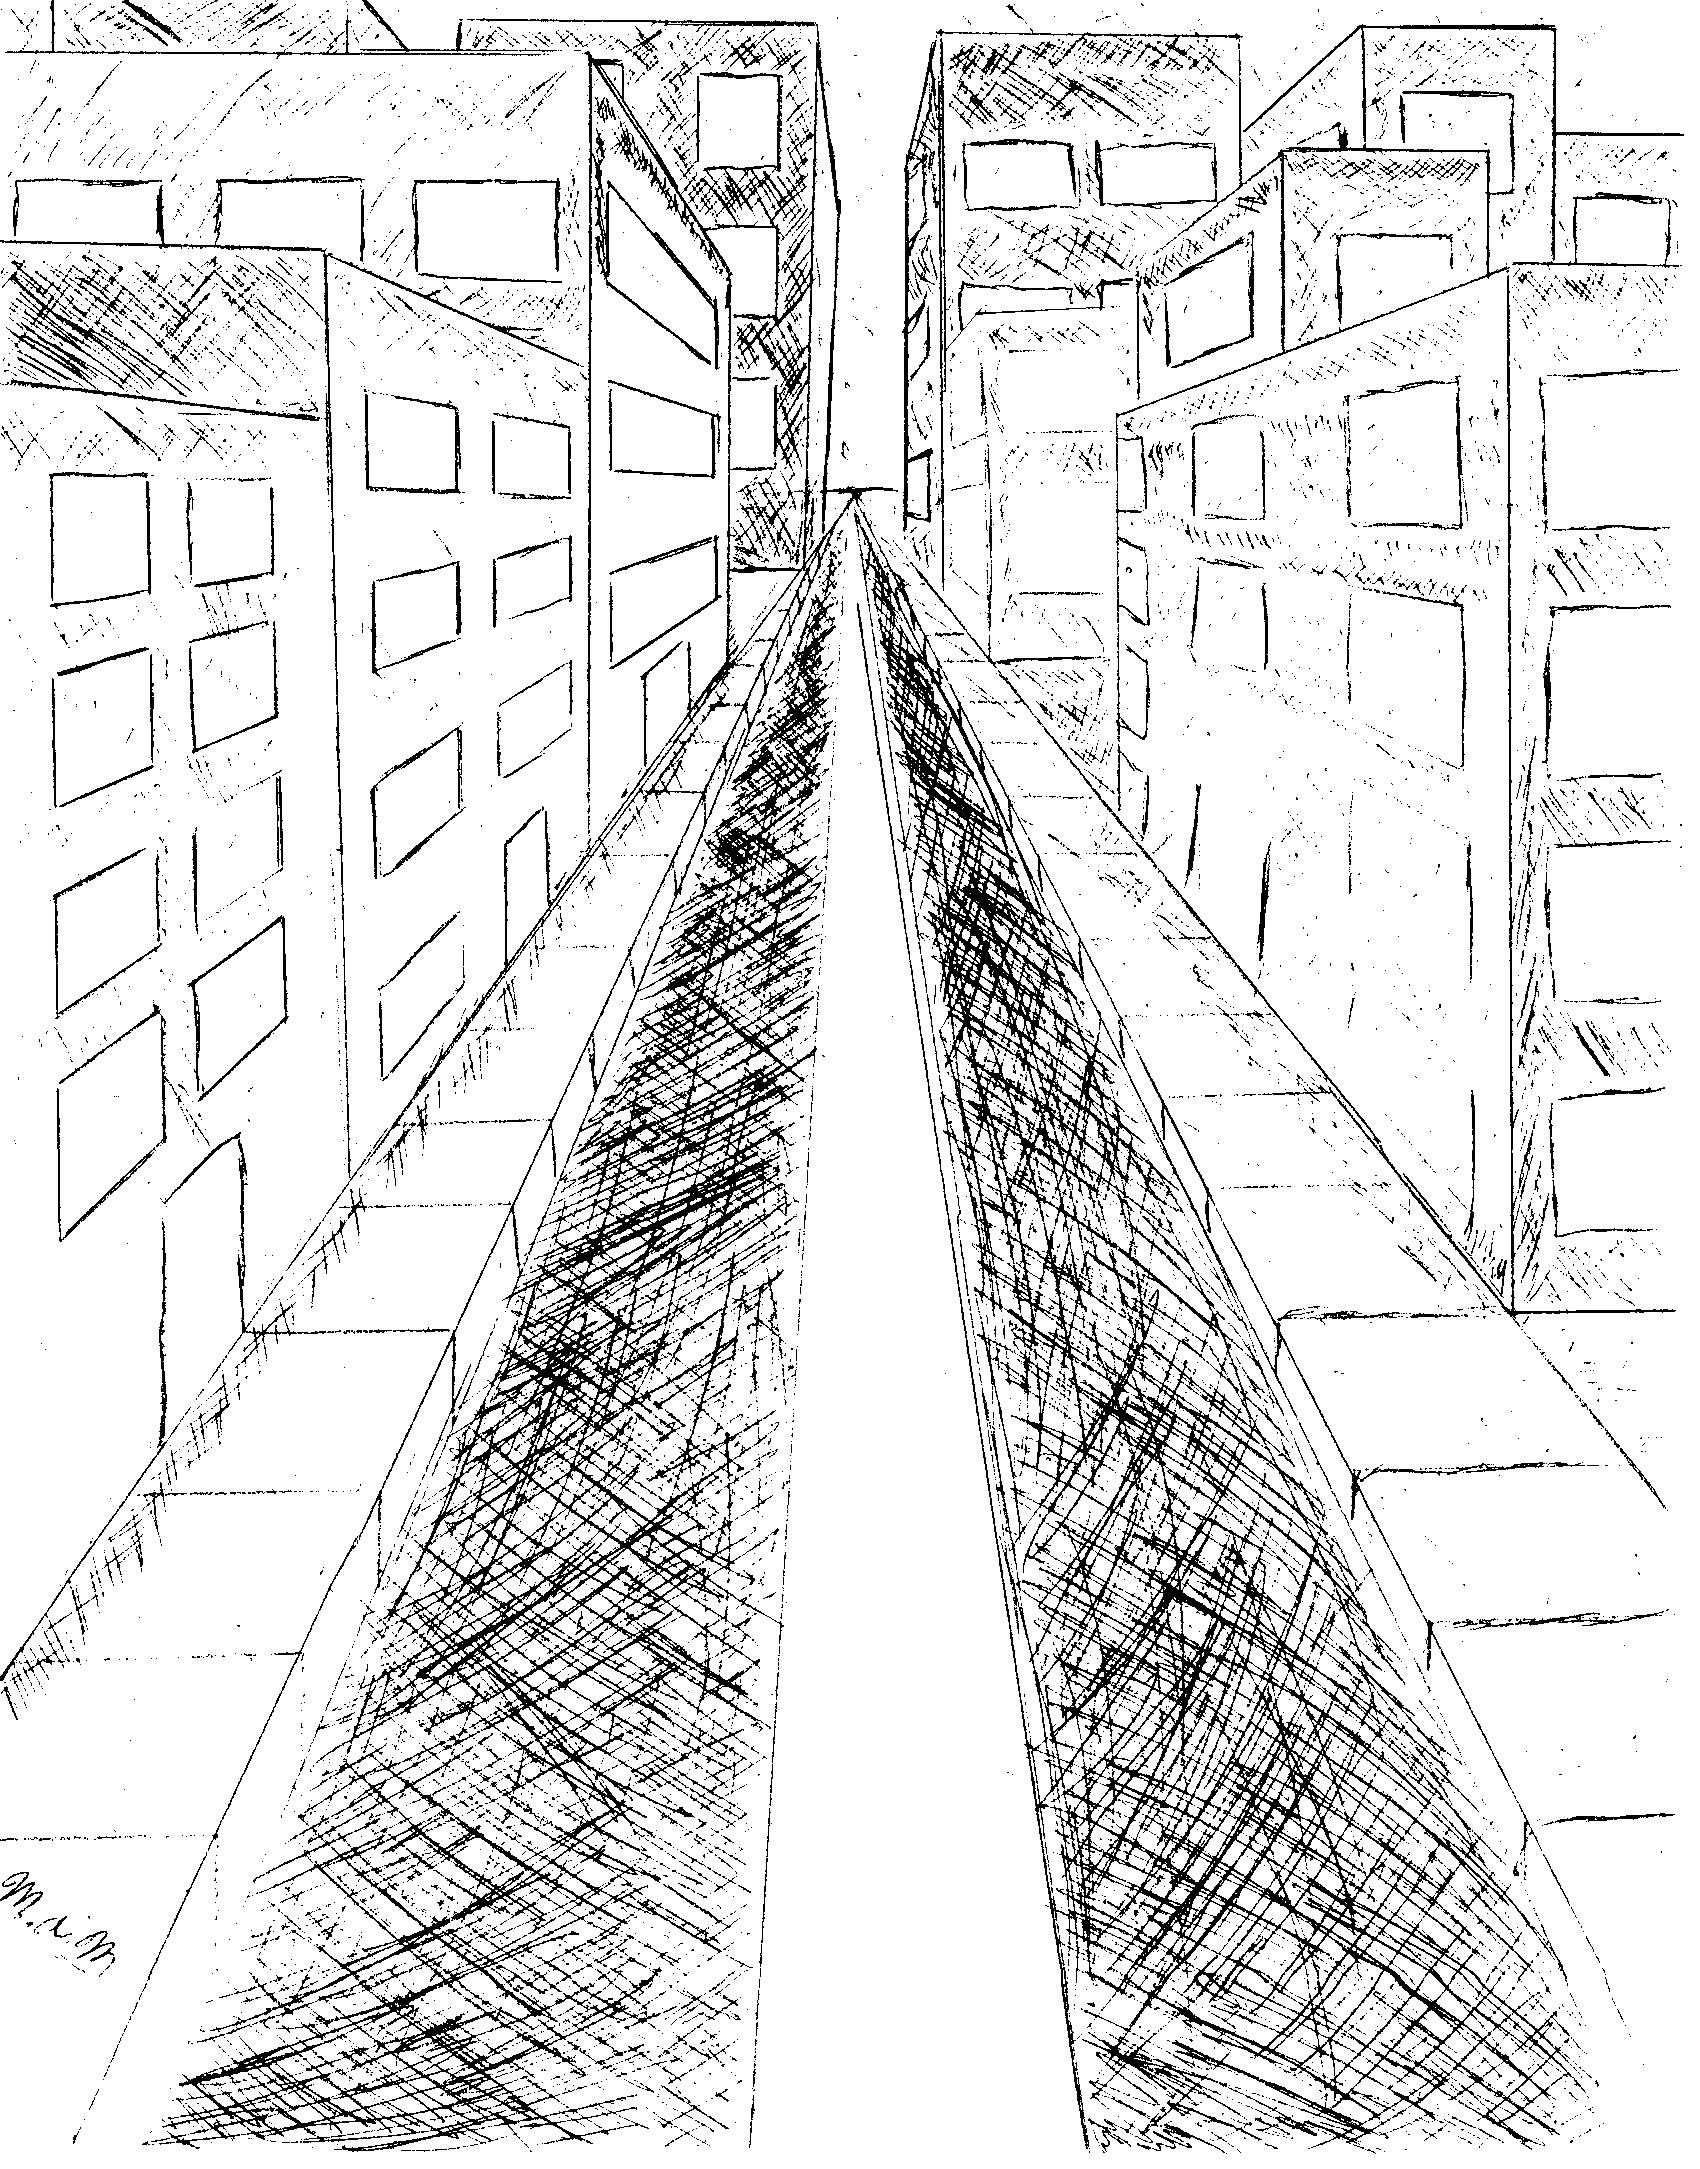 Perspective City Drawing